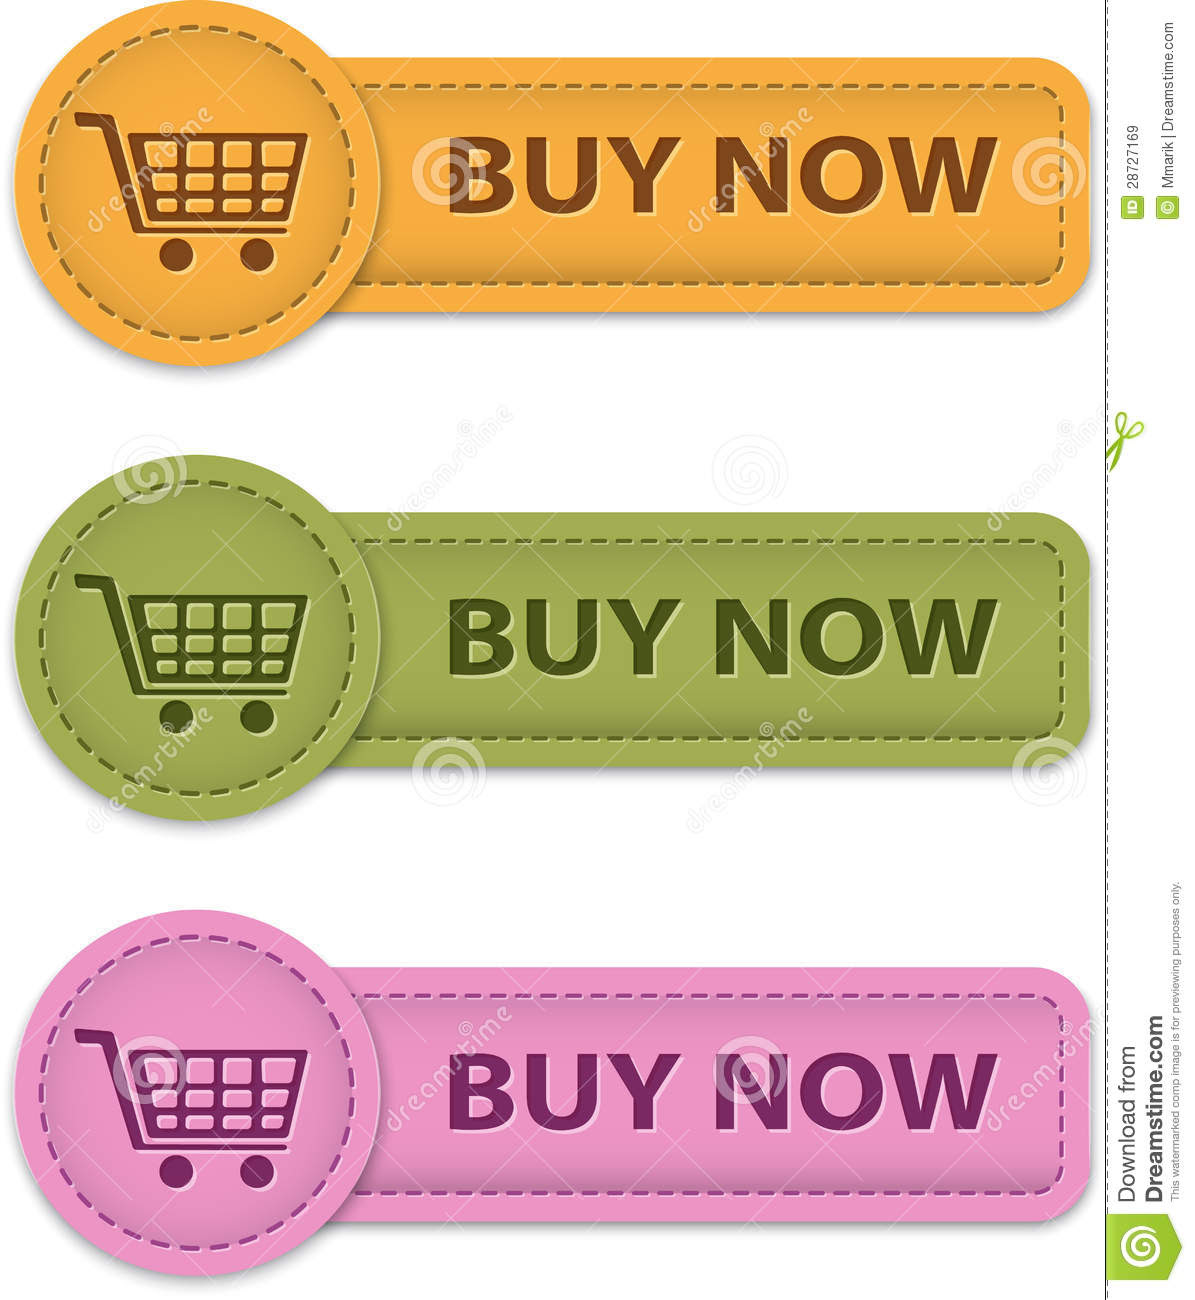 Buy Button: Buy Now Button: Buy Now Buttons Royalty Free Stock Images